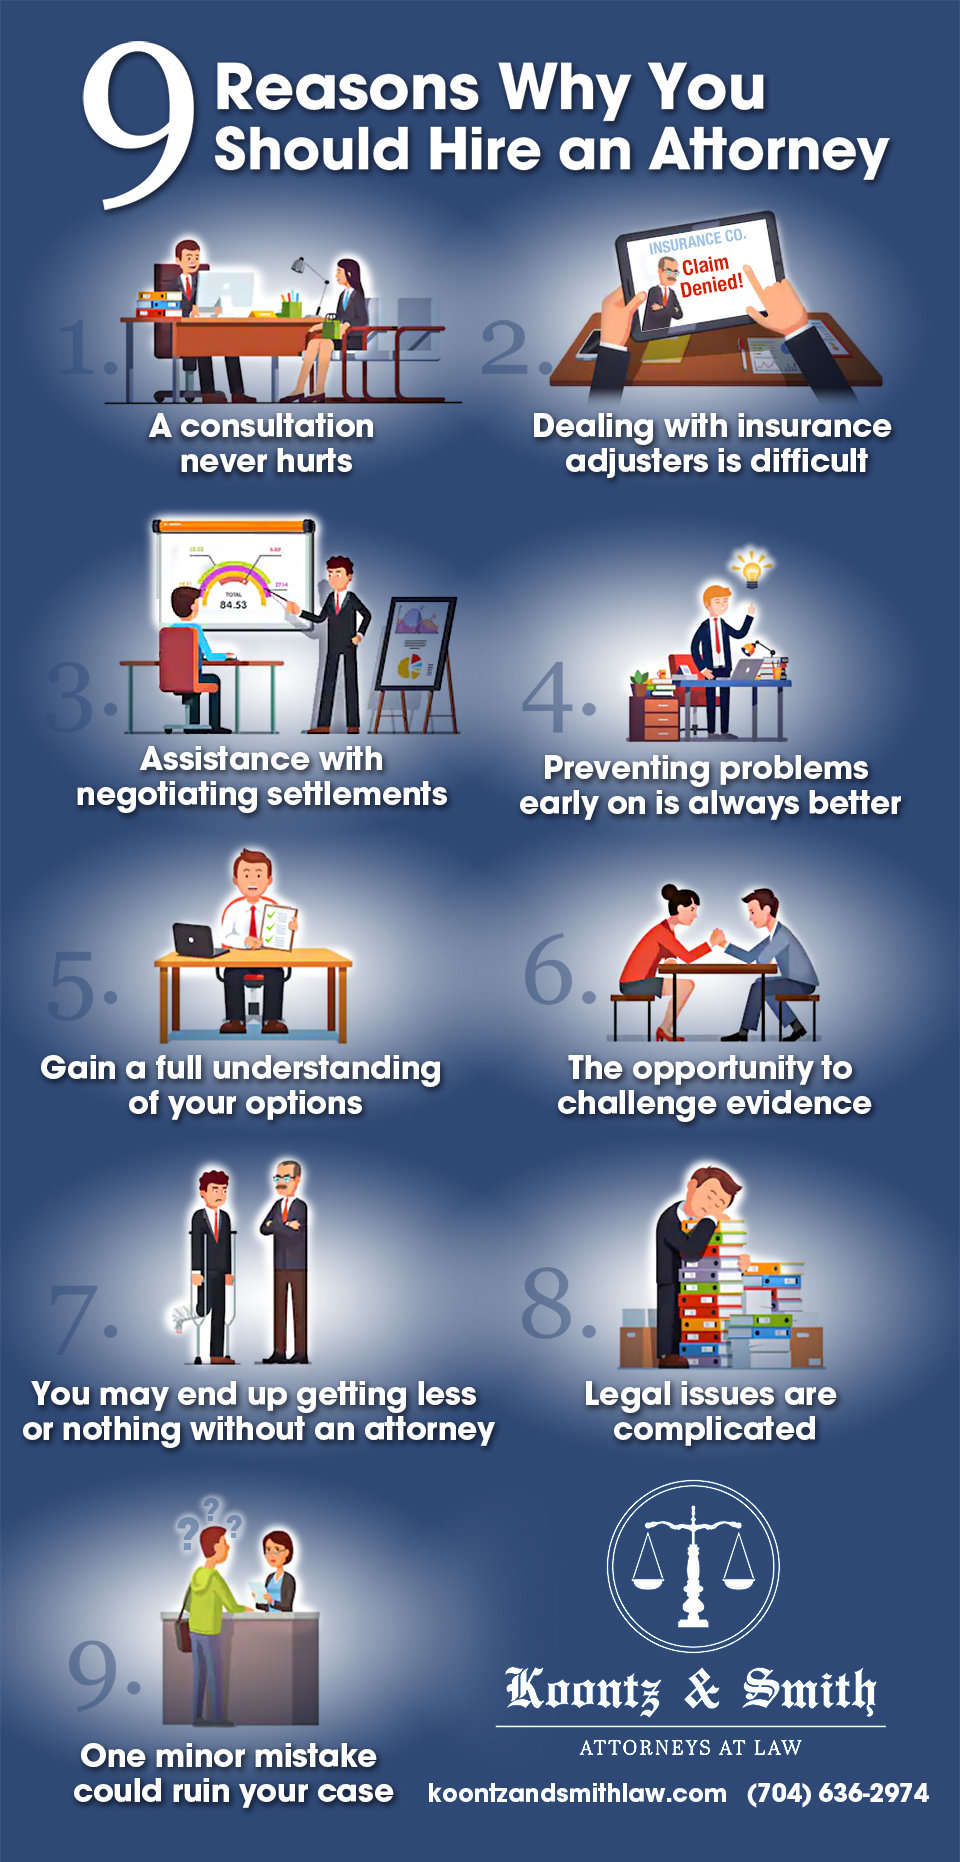 9 Reasons Why You Should Hire an Attorney [infographic]